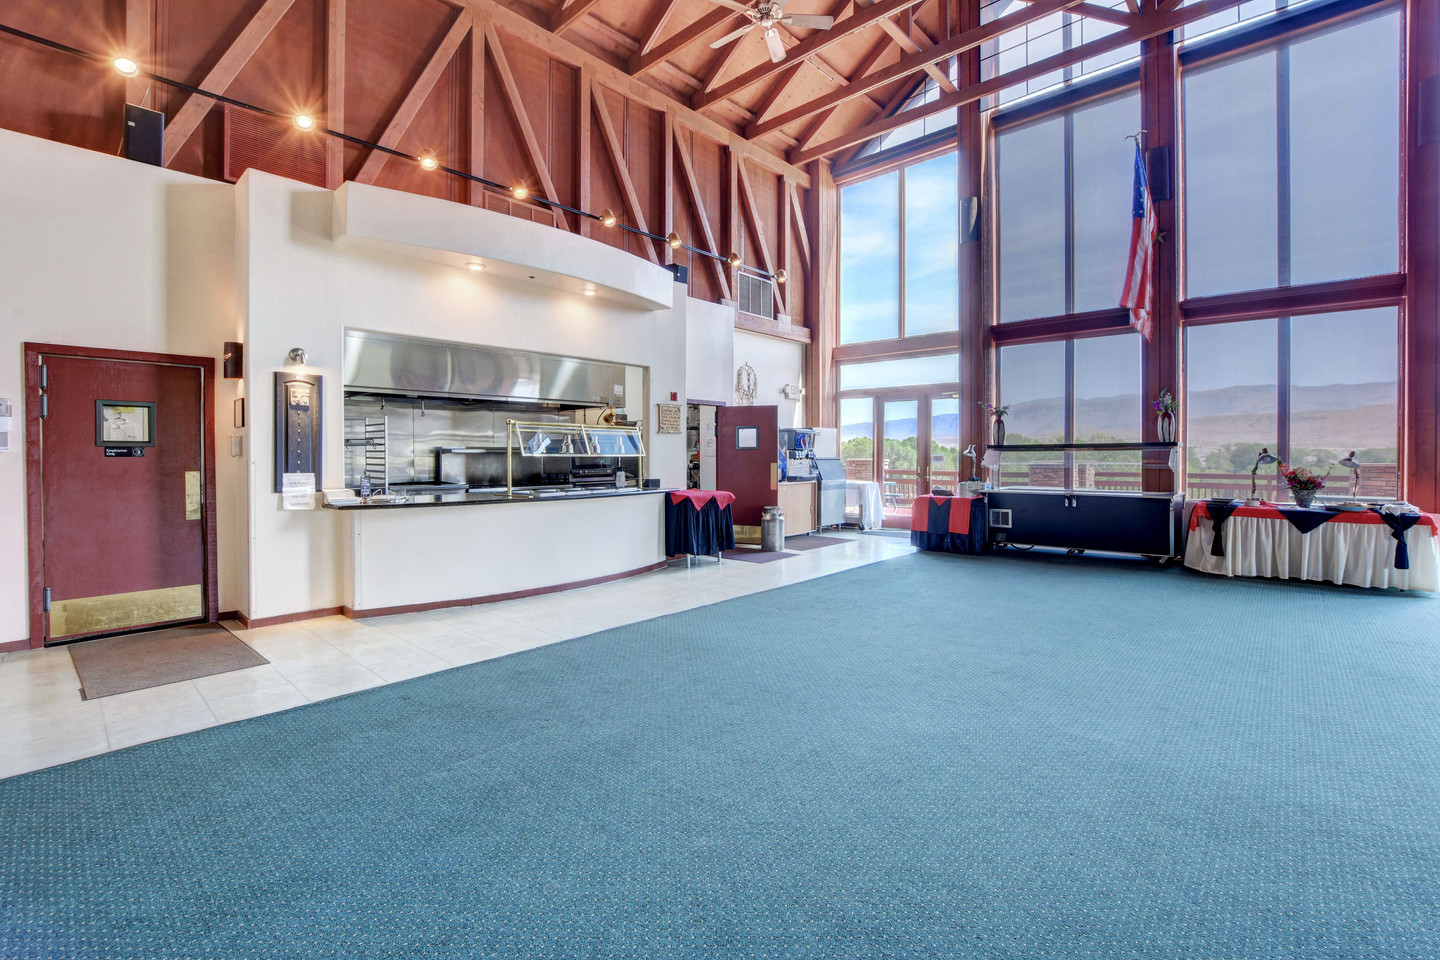 Main Banquet Hall with full professional kitchen